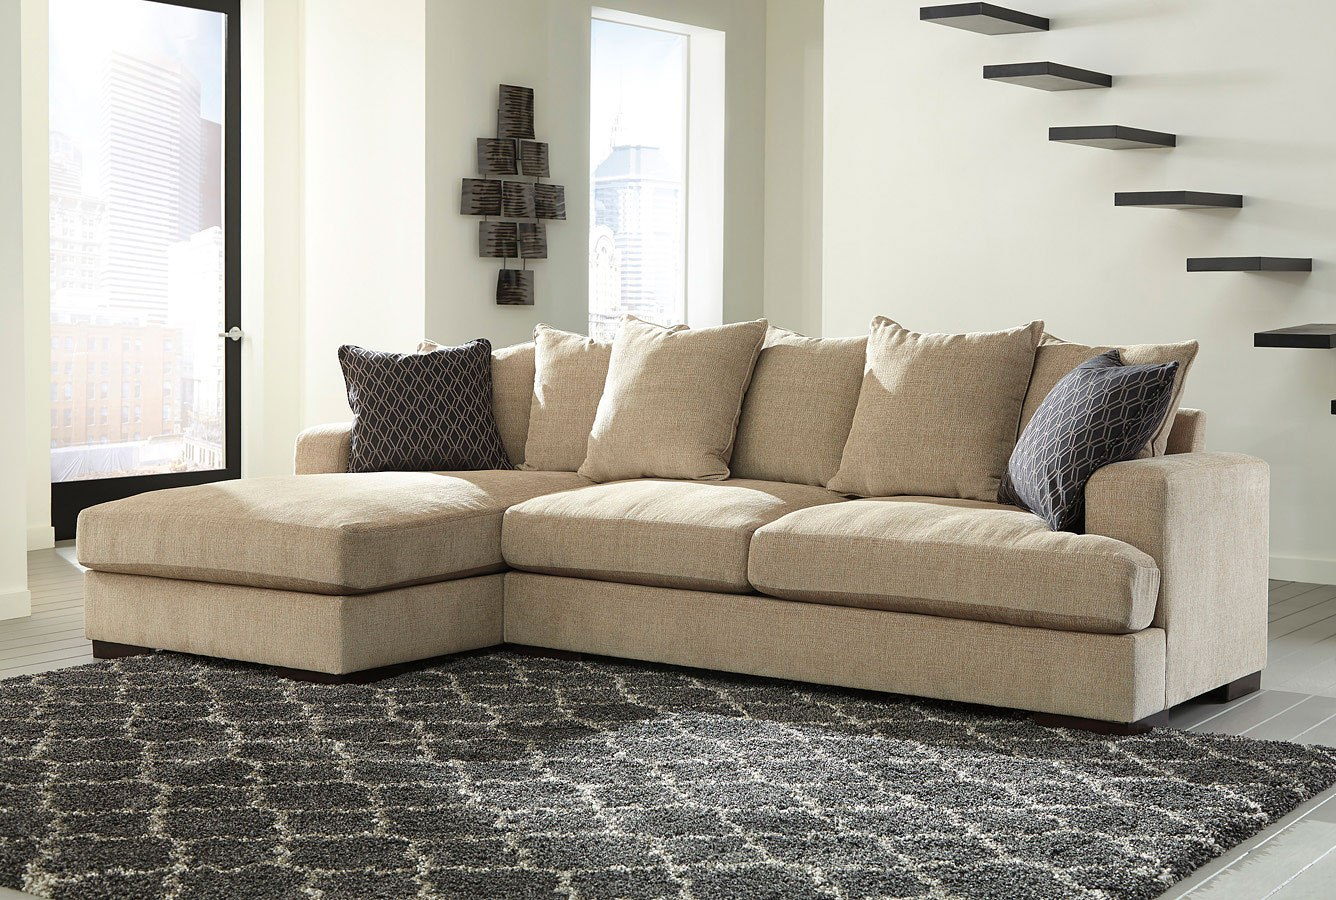 Aquaria Barley Left Chaise Sectional